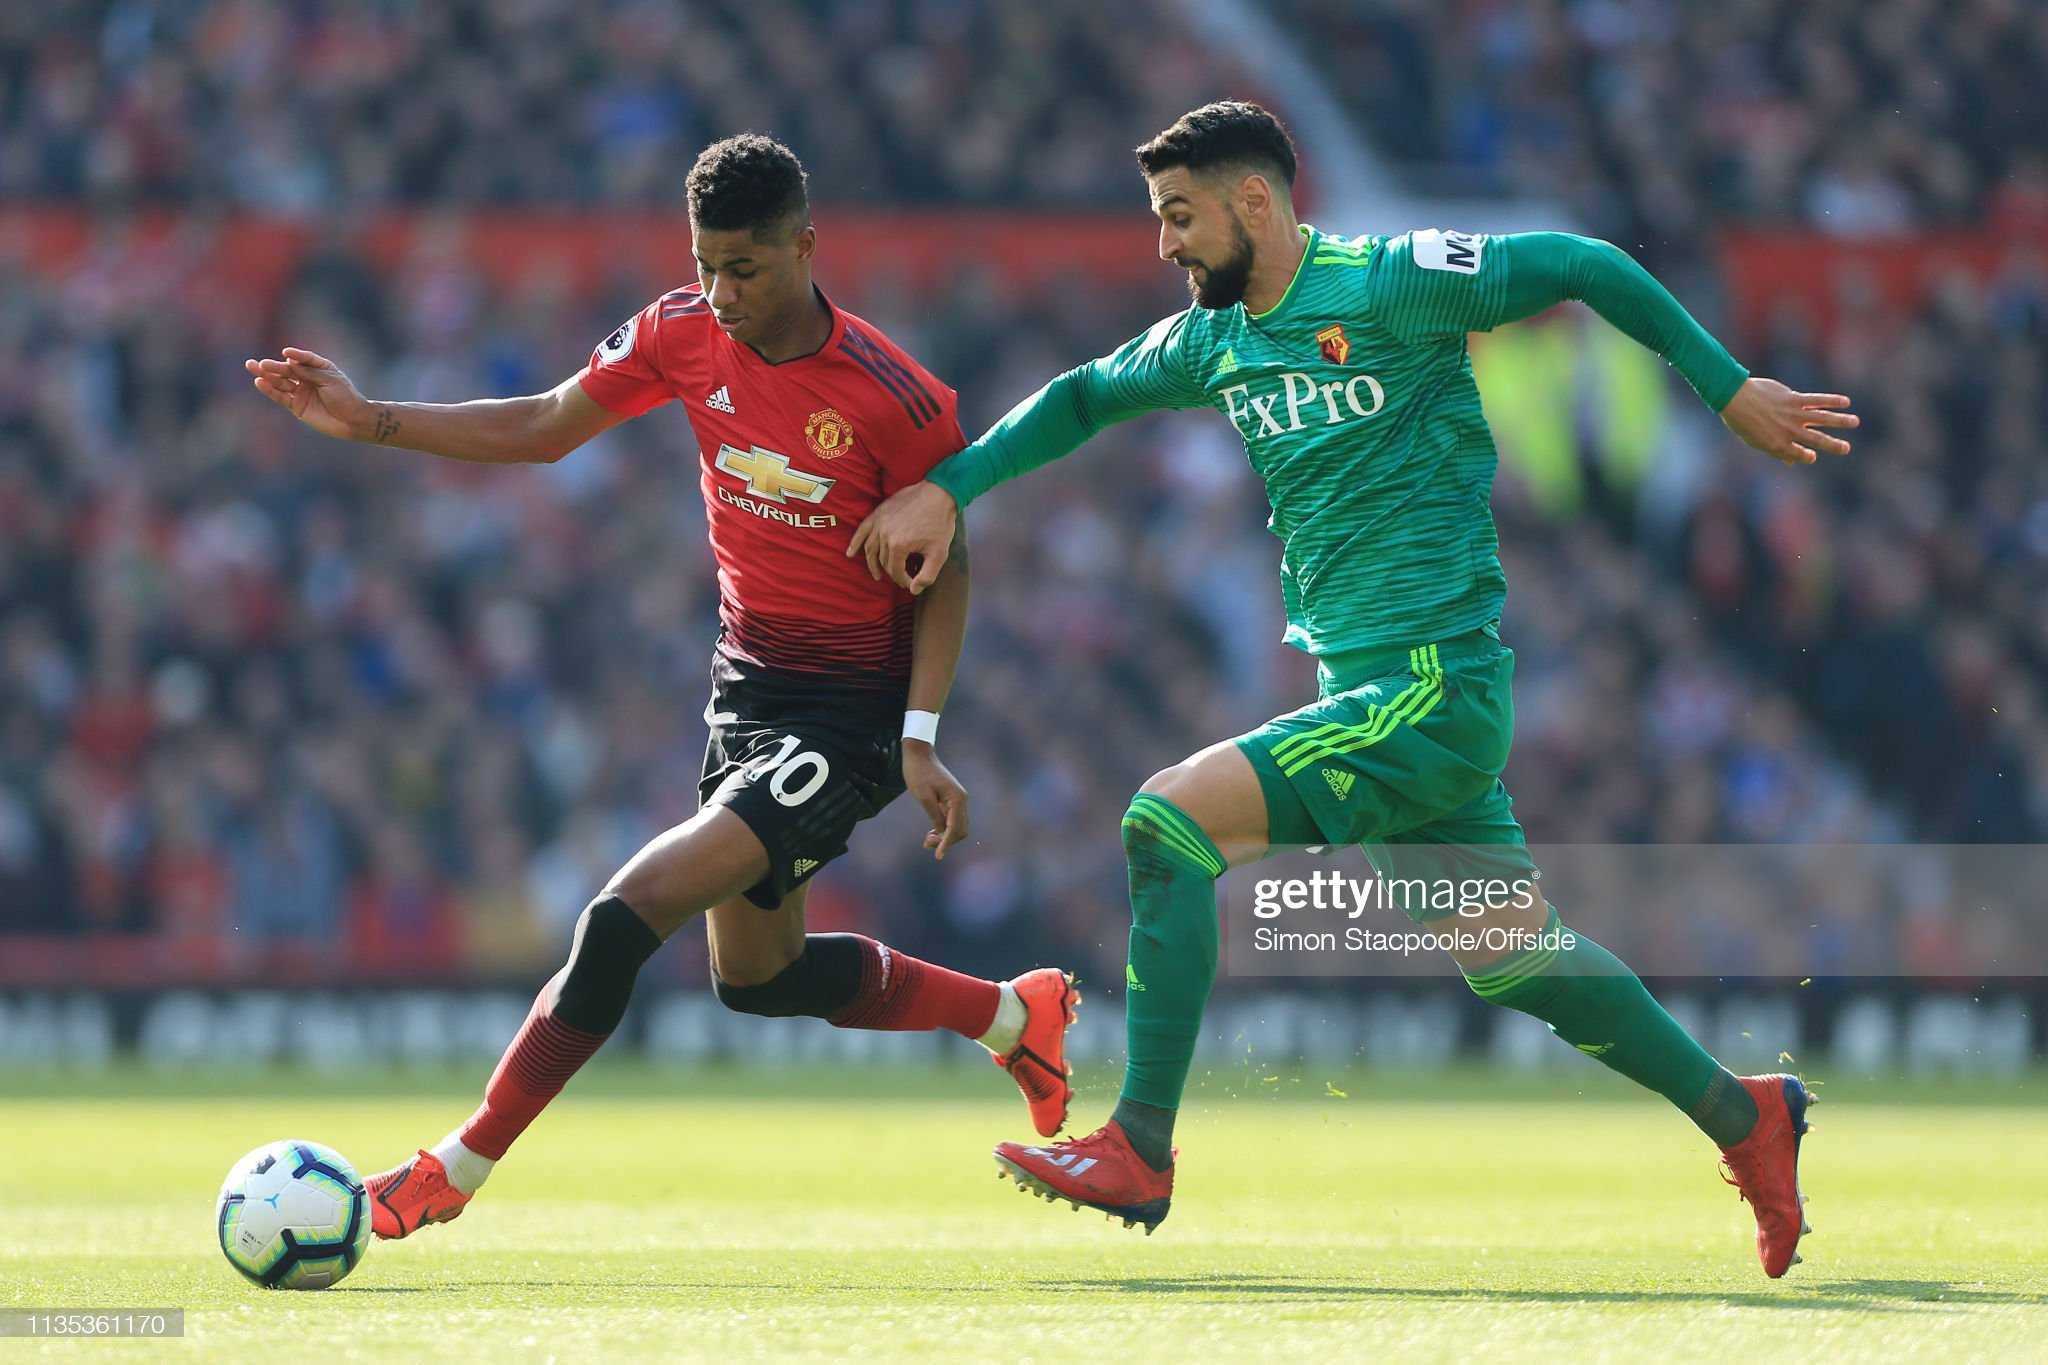 Watford v Manchester United preview, prediction and odds